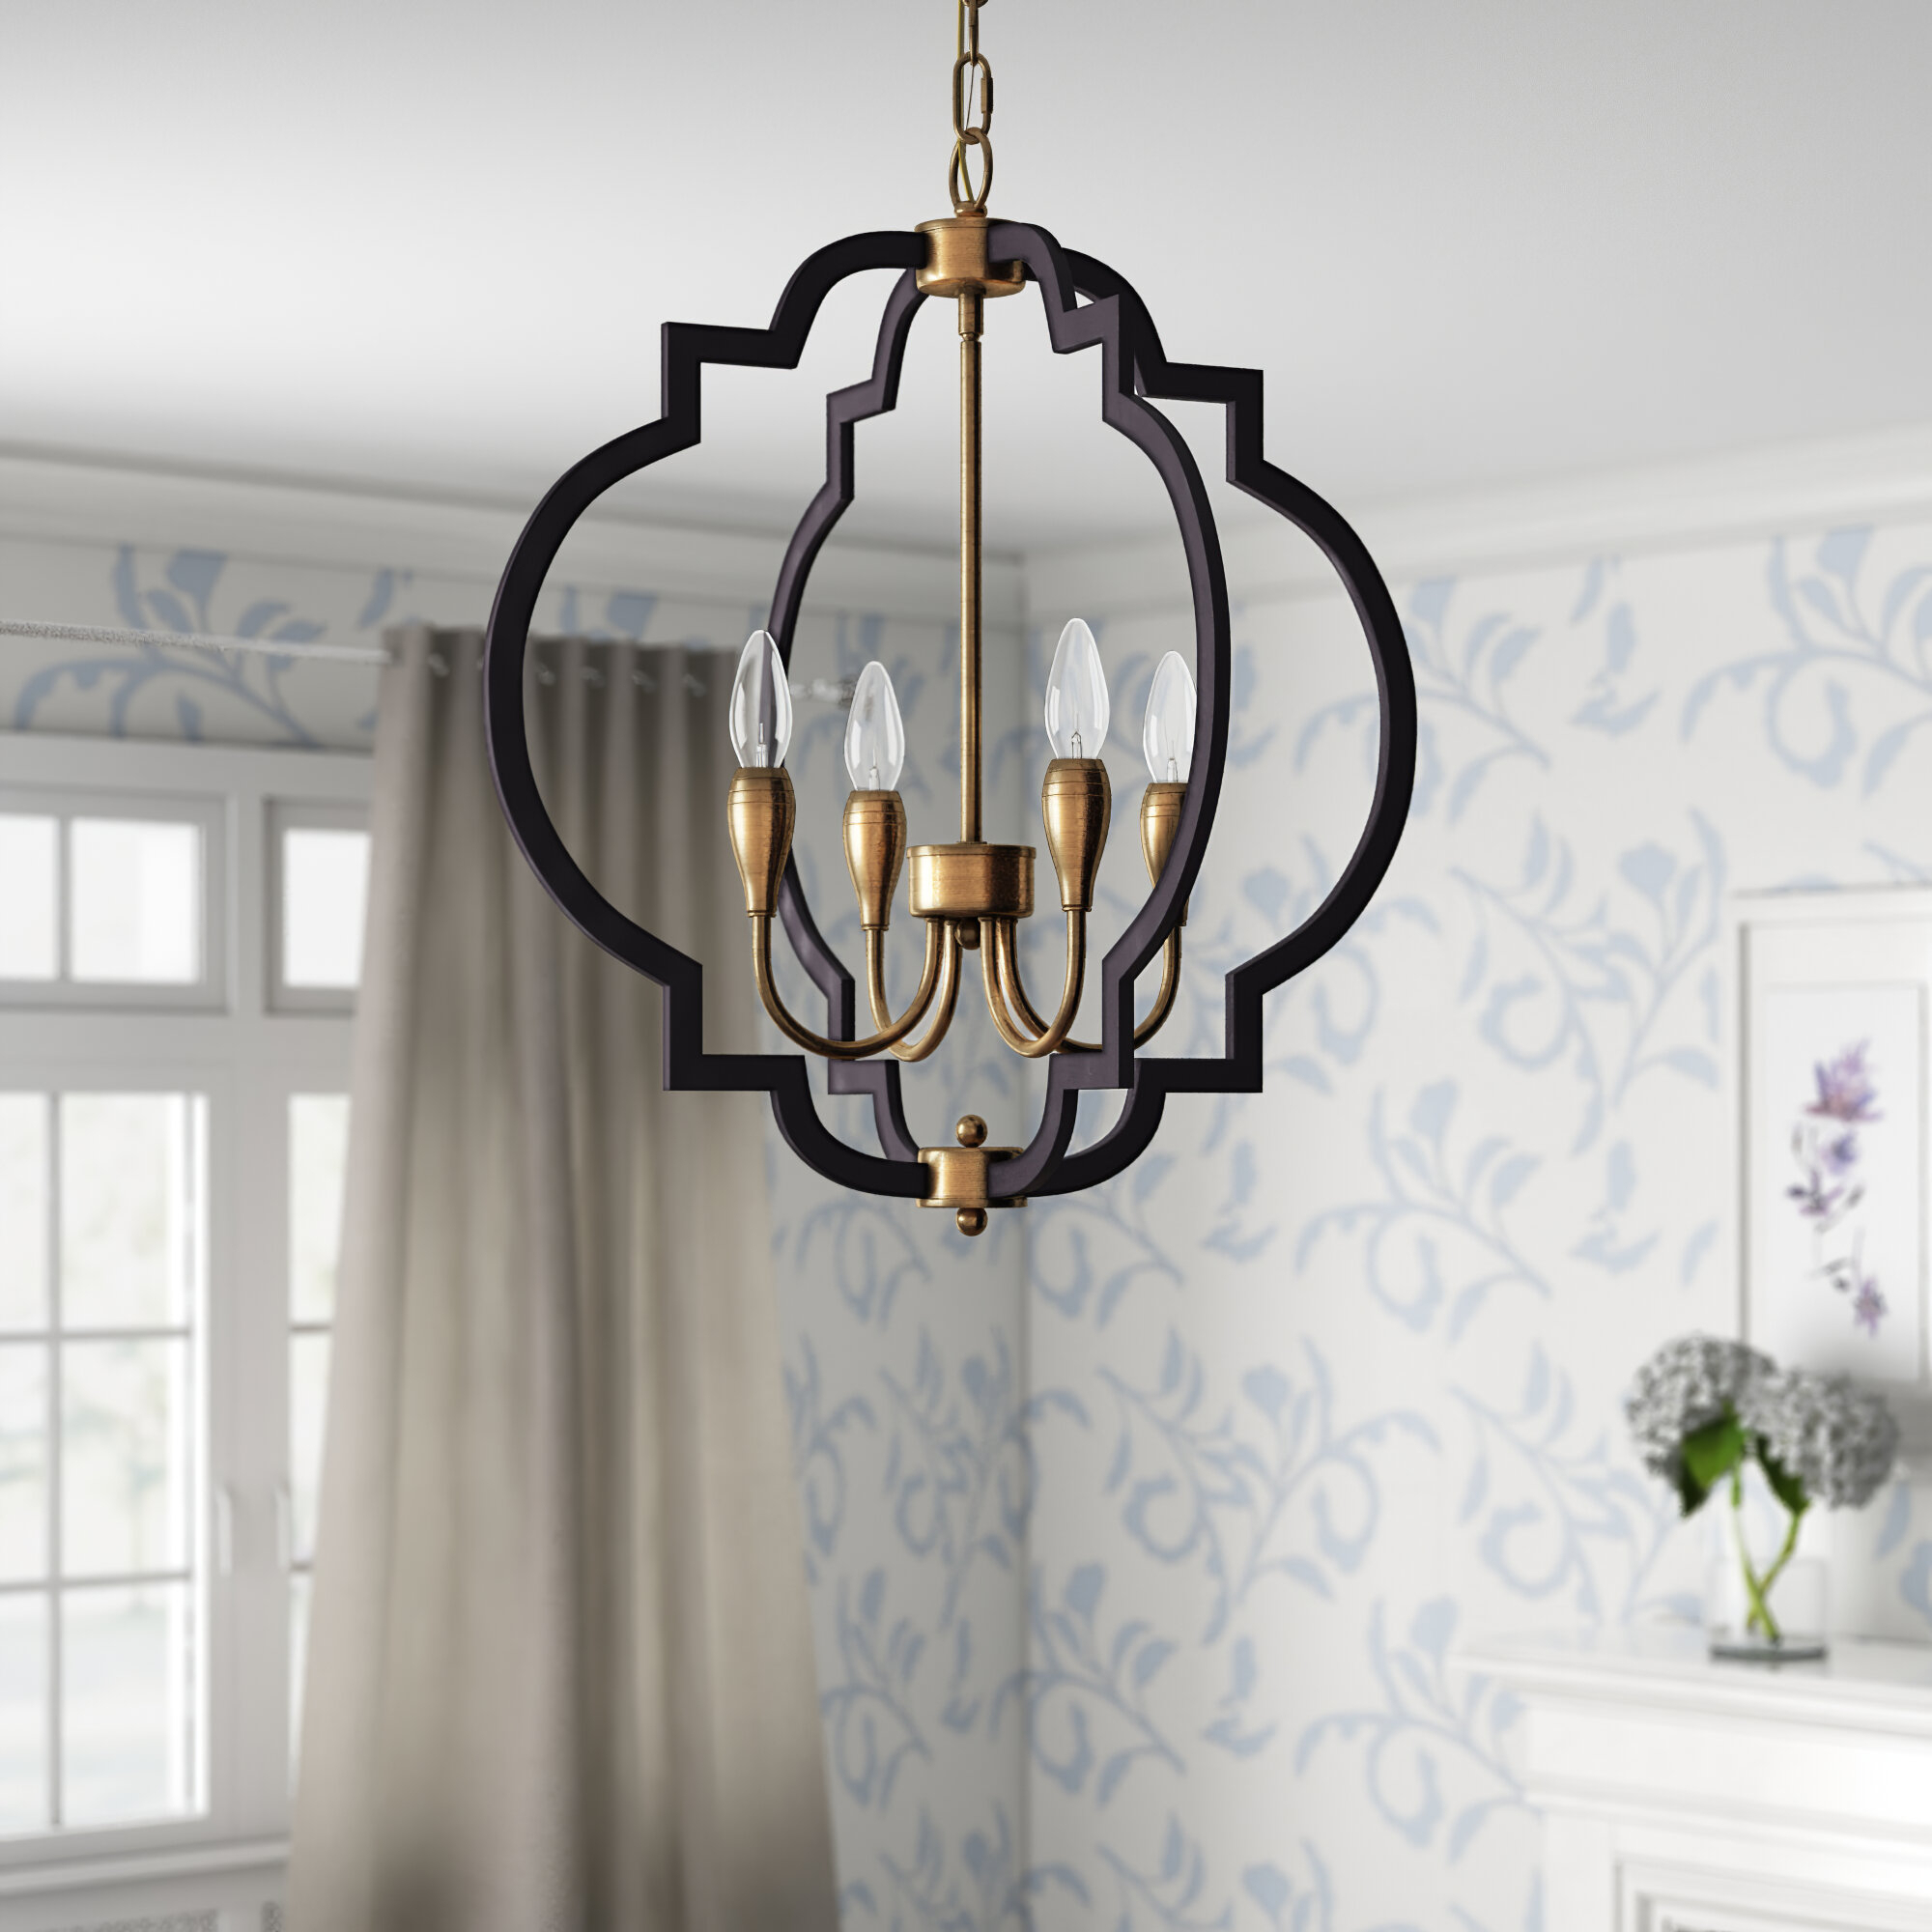 Astin 4 Light Geometric Chandelier Regarding Bennington 4 Light Candle Style Chandeliers (View 14 of 30)